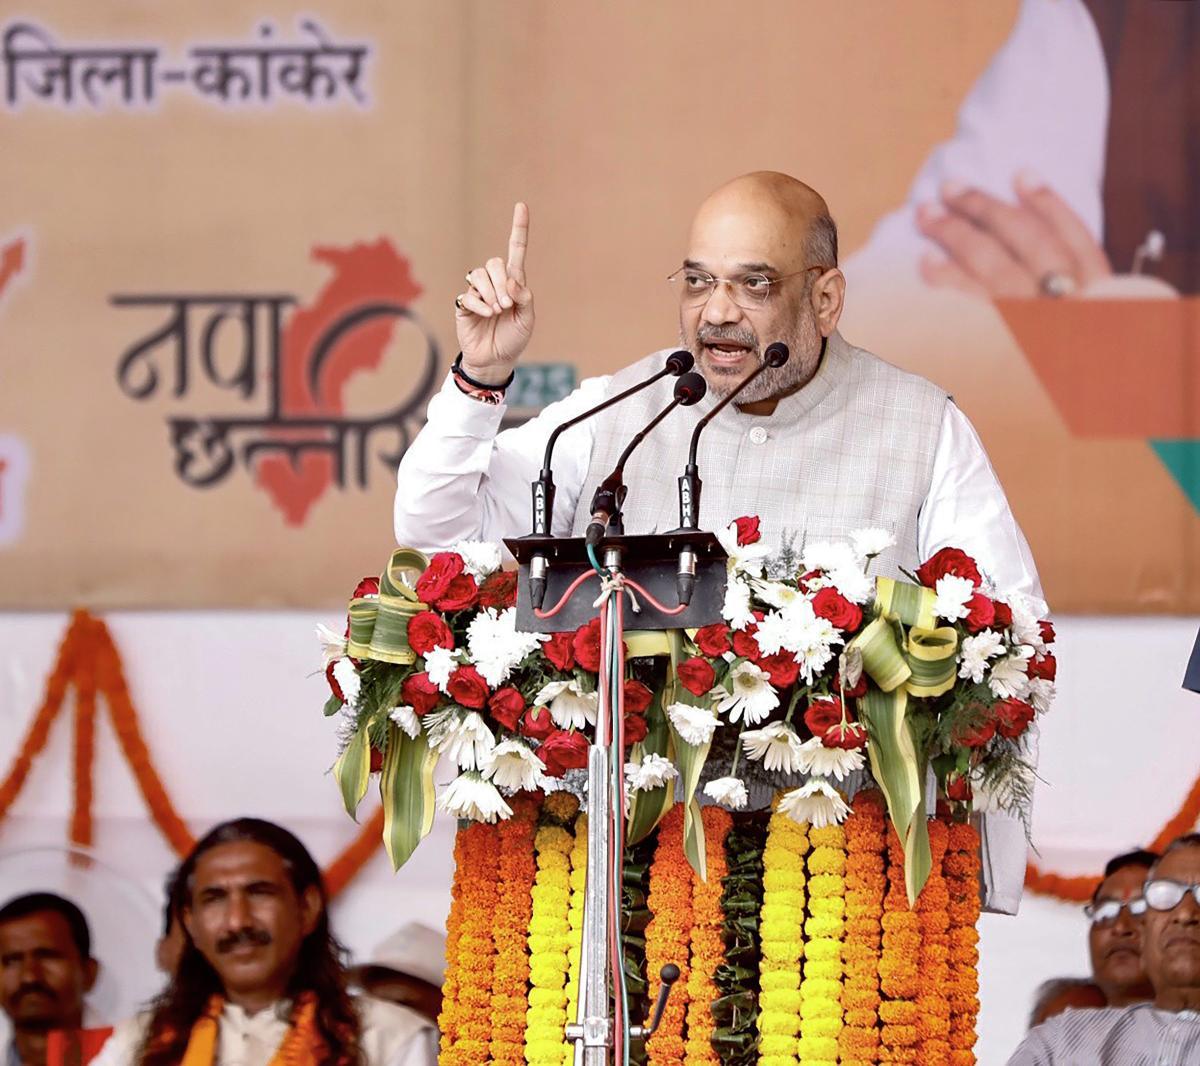 BJP president Amit Shah on Saturday formally launched the party's mass contact campaign in the Malwa-Nimad region of poll-bound Madhya Pradesh. PTI photo